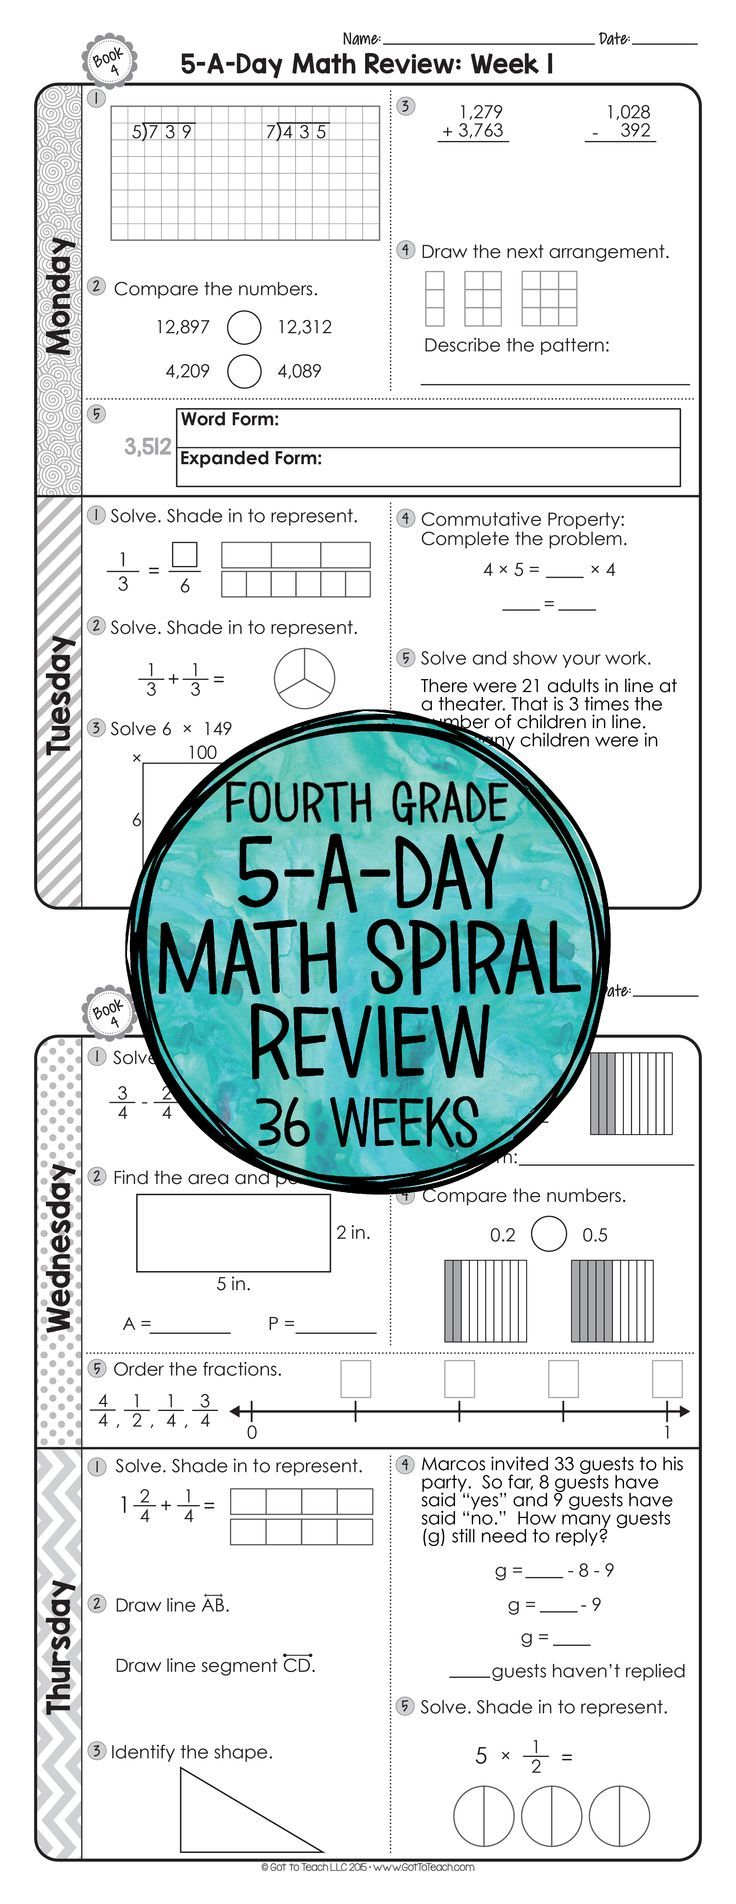 Worksheet Sixth Grade Math Review 4th grade daily math spiral review morning work work